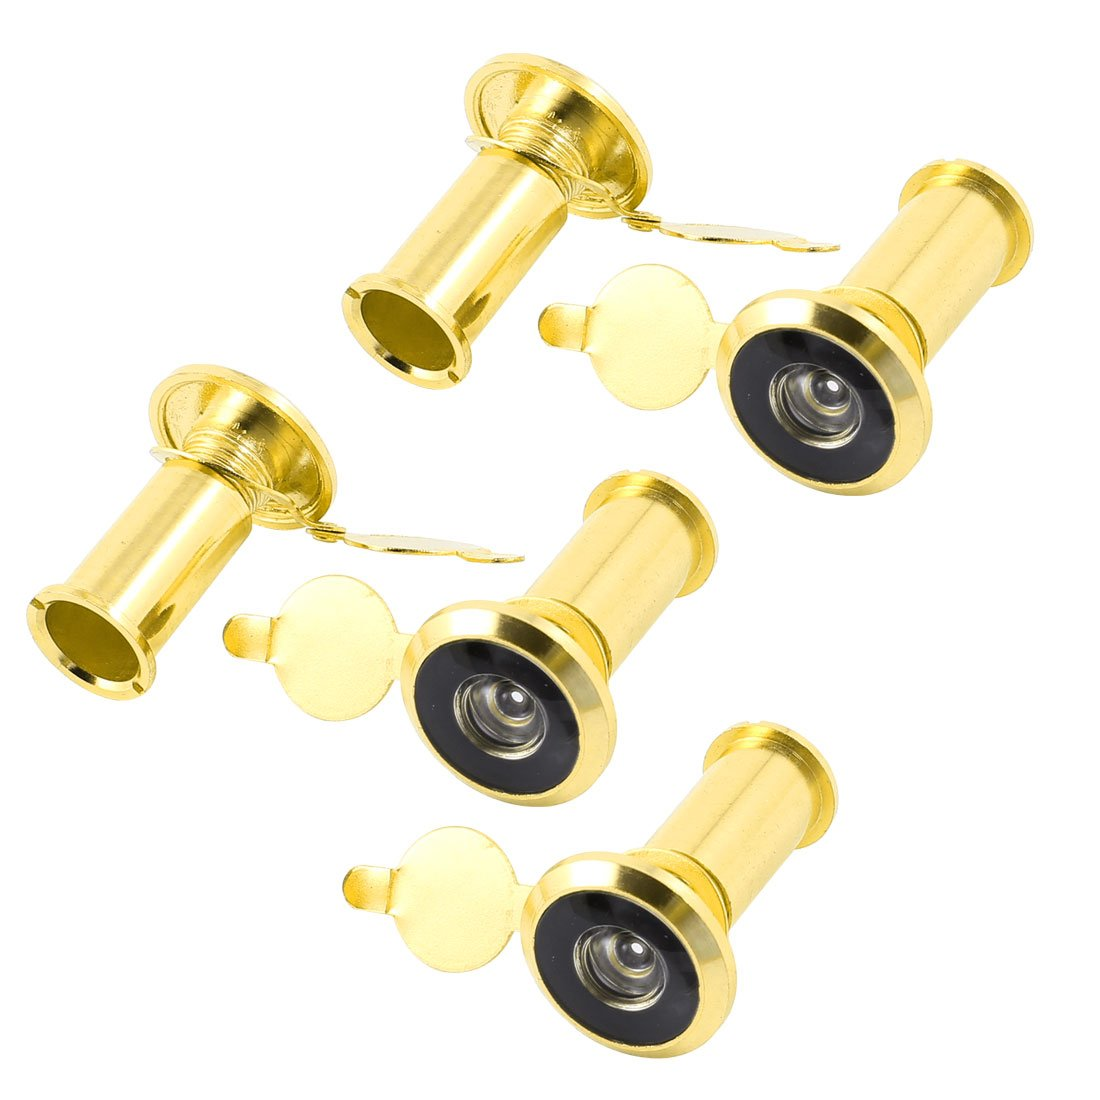 House 200 Degree Viewing Angle Door Viewer Peephole Gold Tone 5pcs Sourcingmap a14070400ux0876